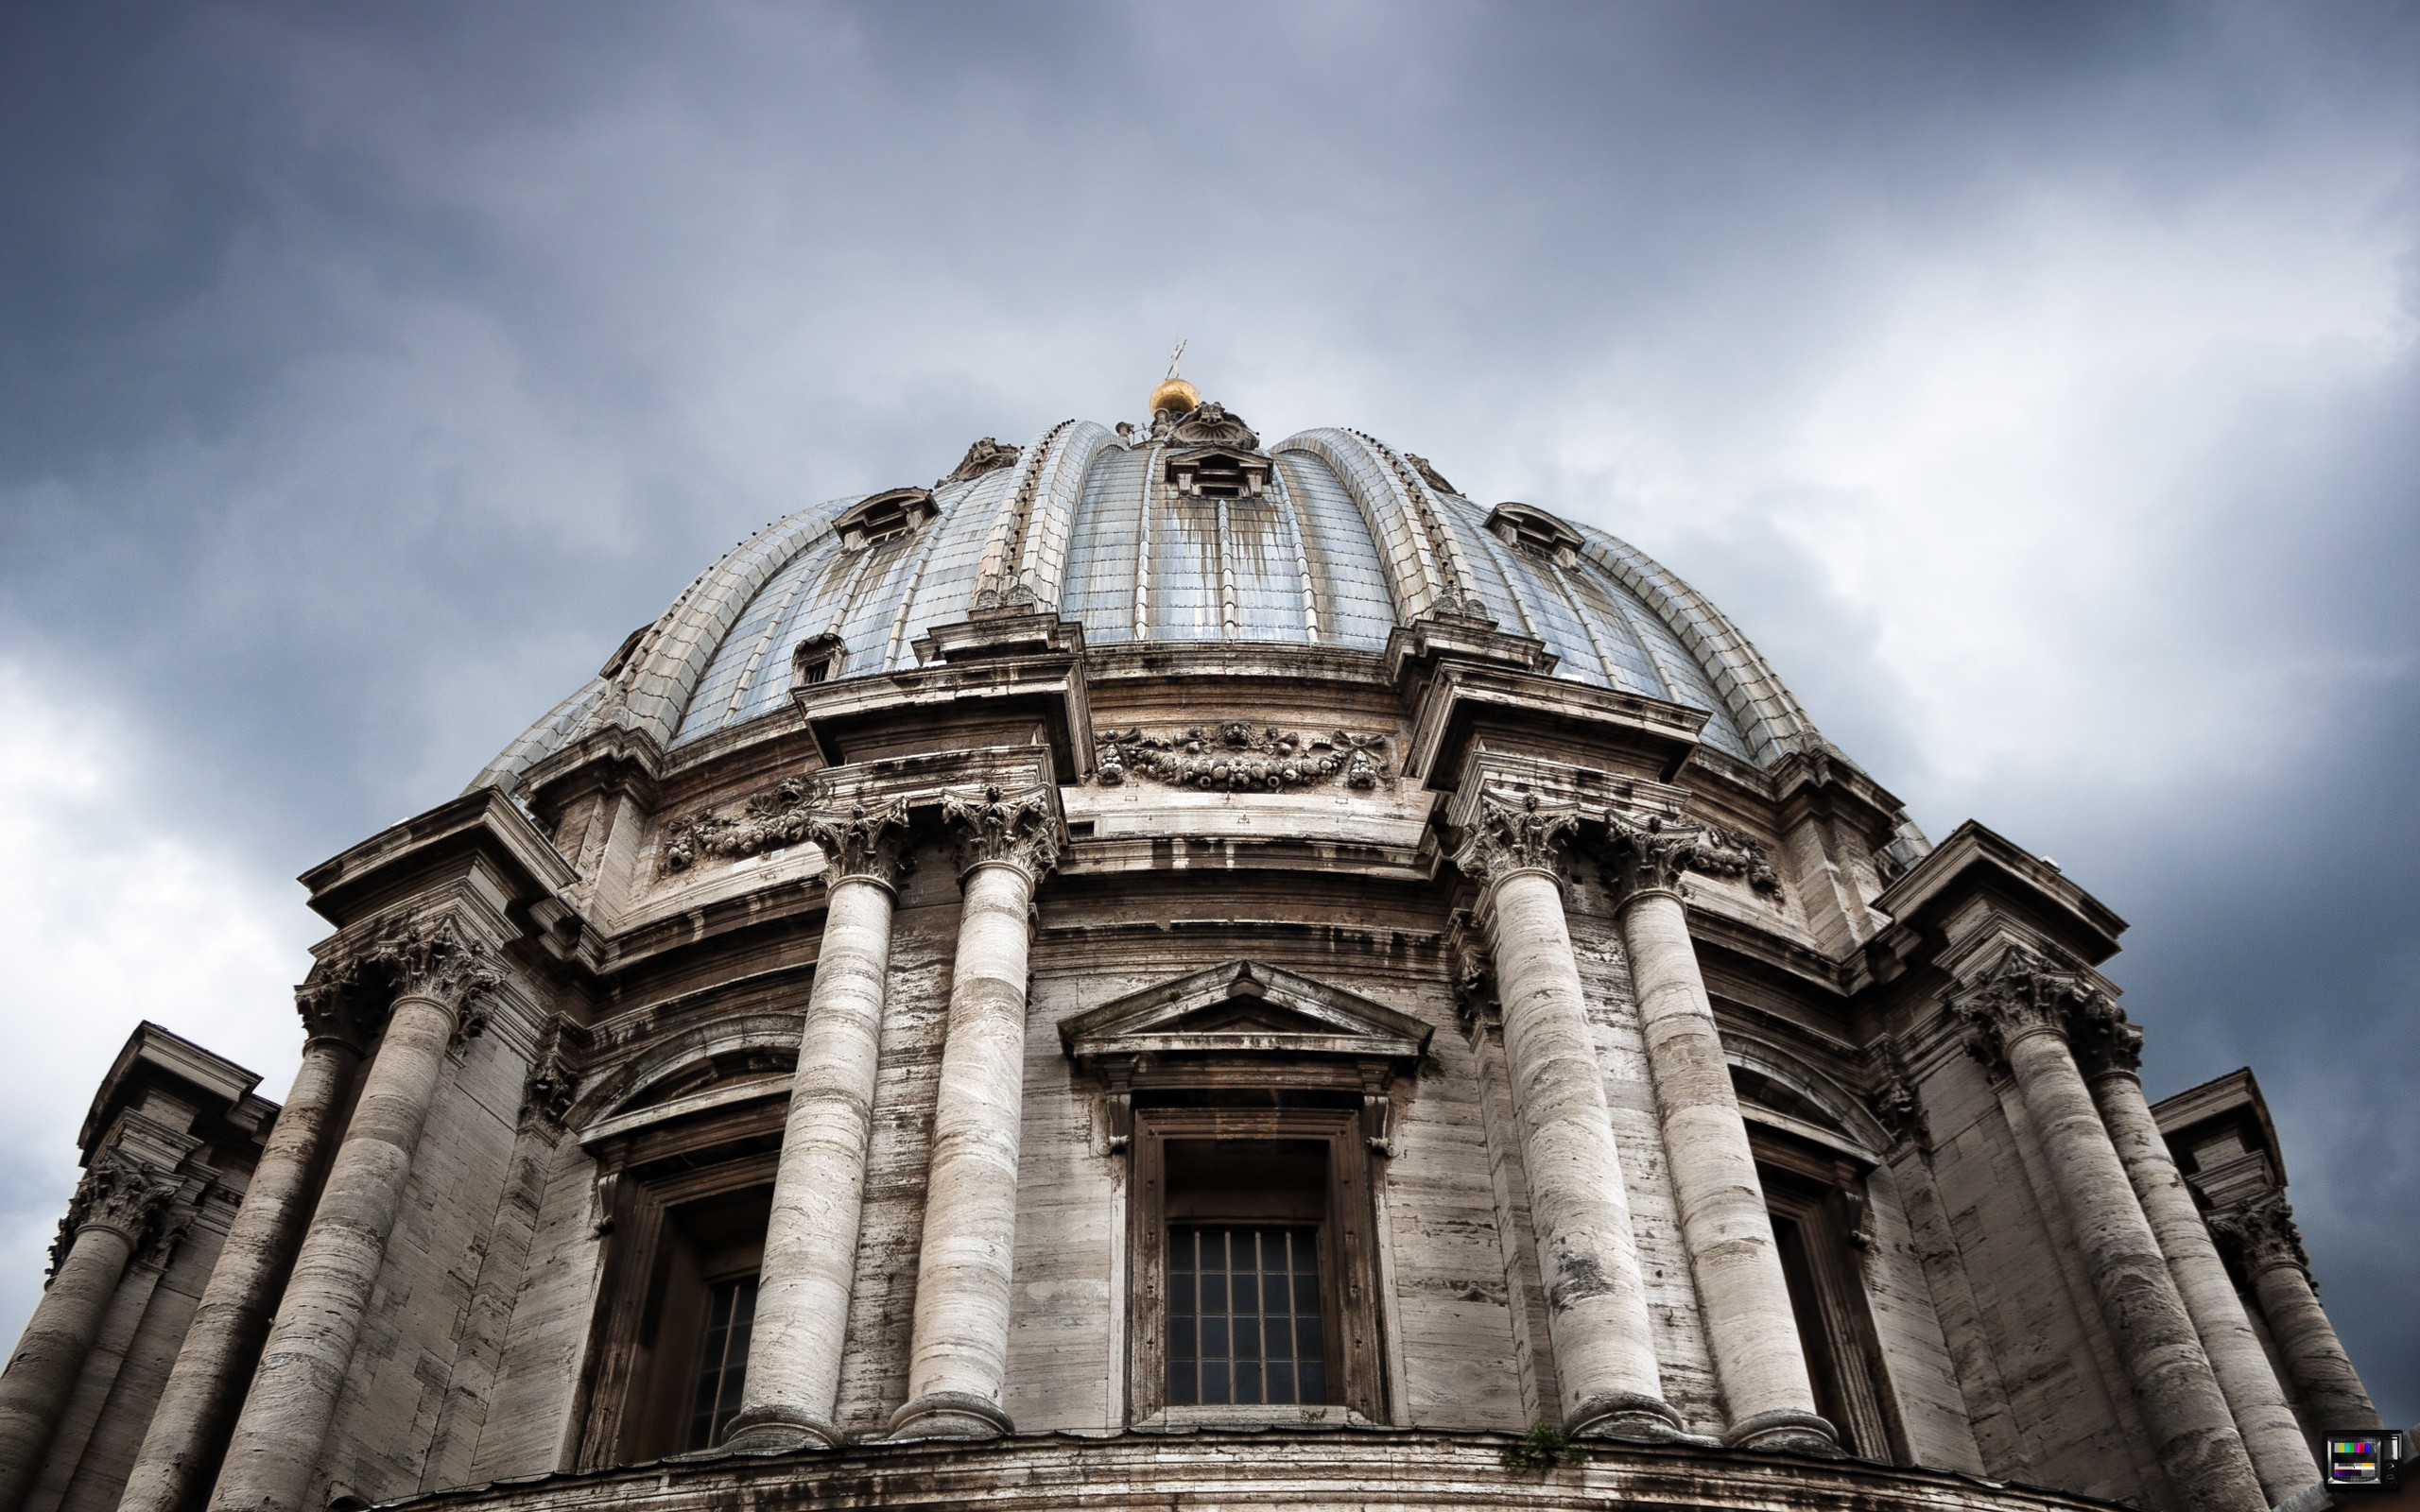 St Peter's Basilica wallpapers | St Peter's Basilica stock ...